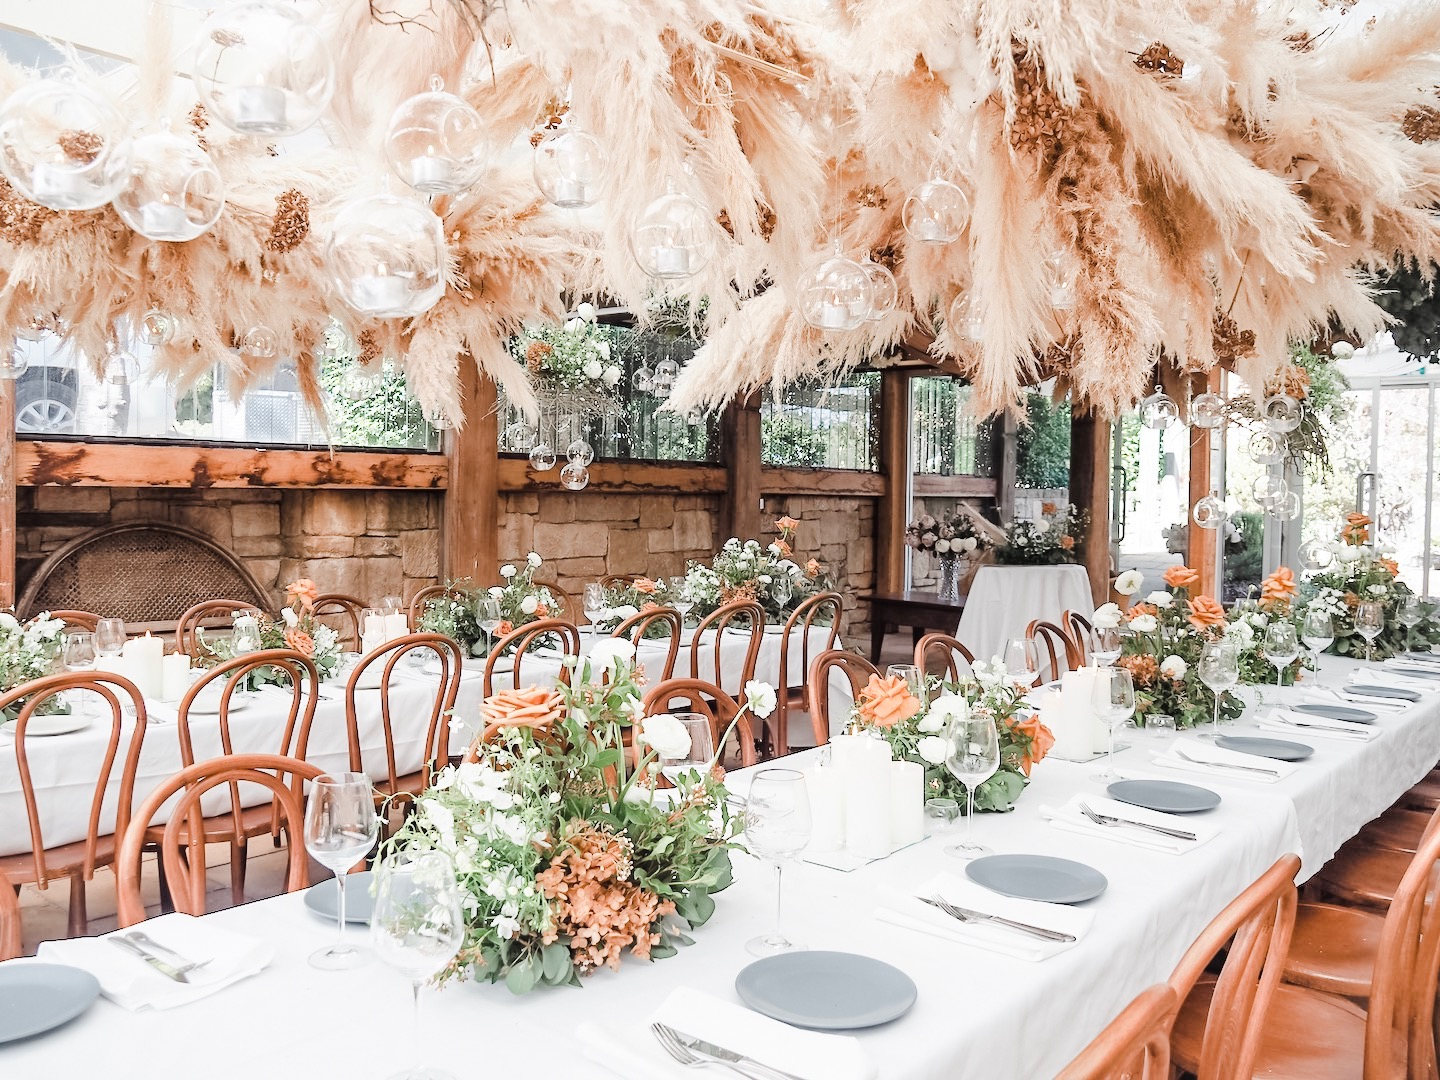 love, hope, flowers, lhflowers, wedding flowers, flowers, destination wedding, southern, Highlands, wedding, farm wedding, wedding venue, toffee, roses, rustic wedding, barn, farm kangaroo, guest table flowers, pampas grass